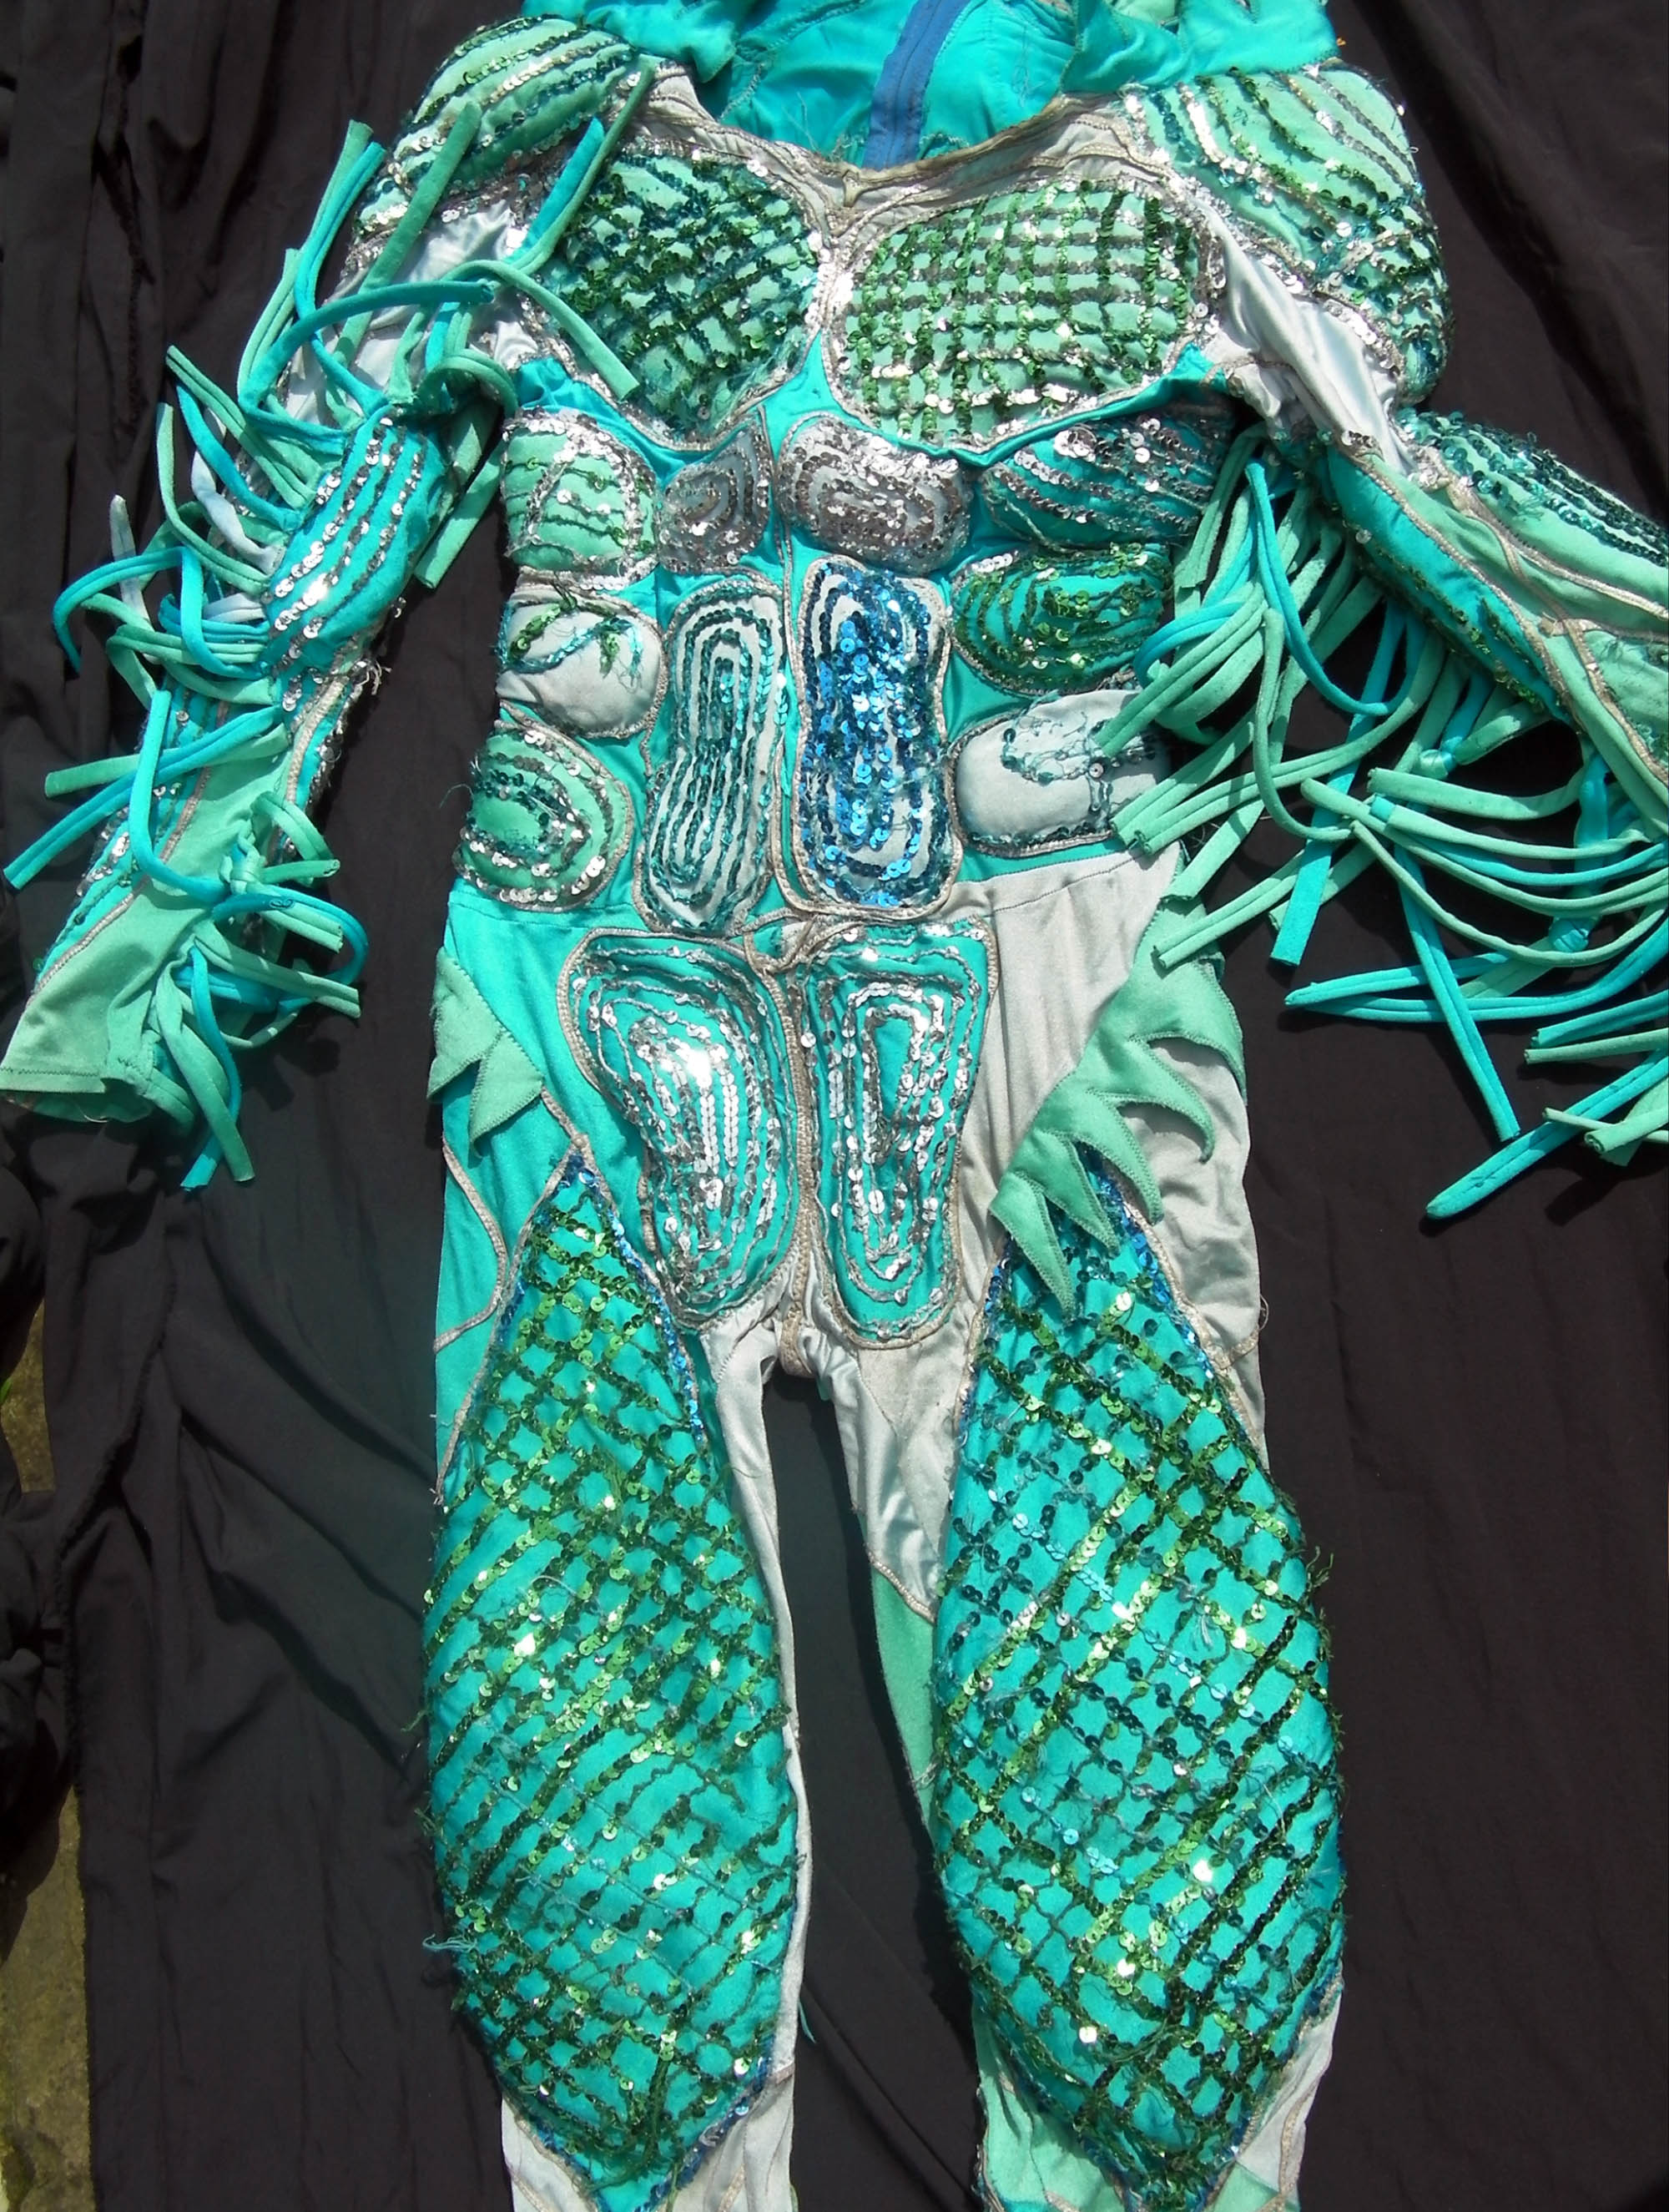 Close-up of the costume from the Enchantress Show